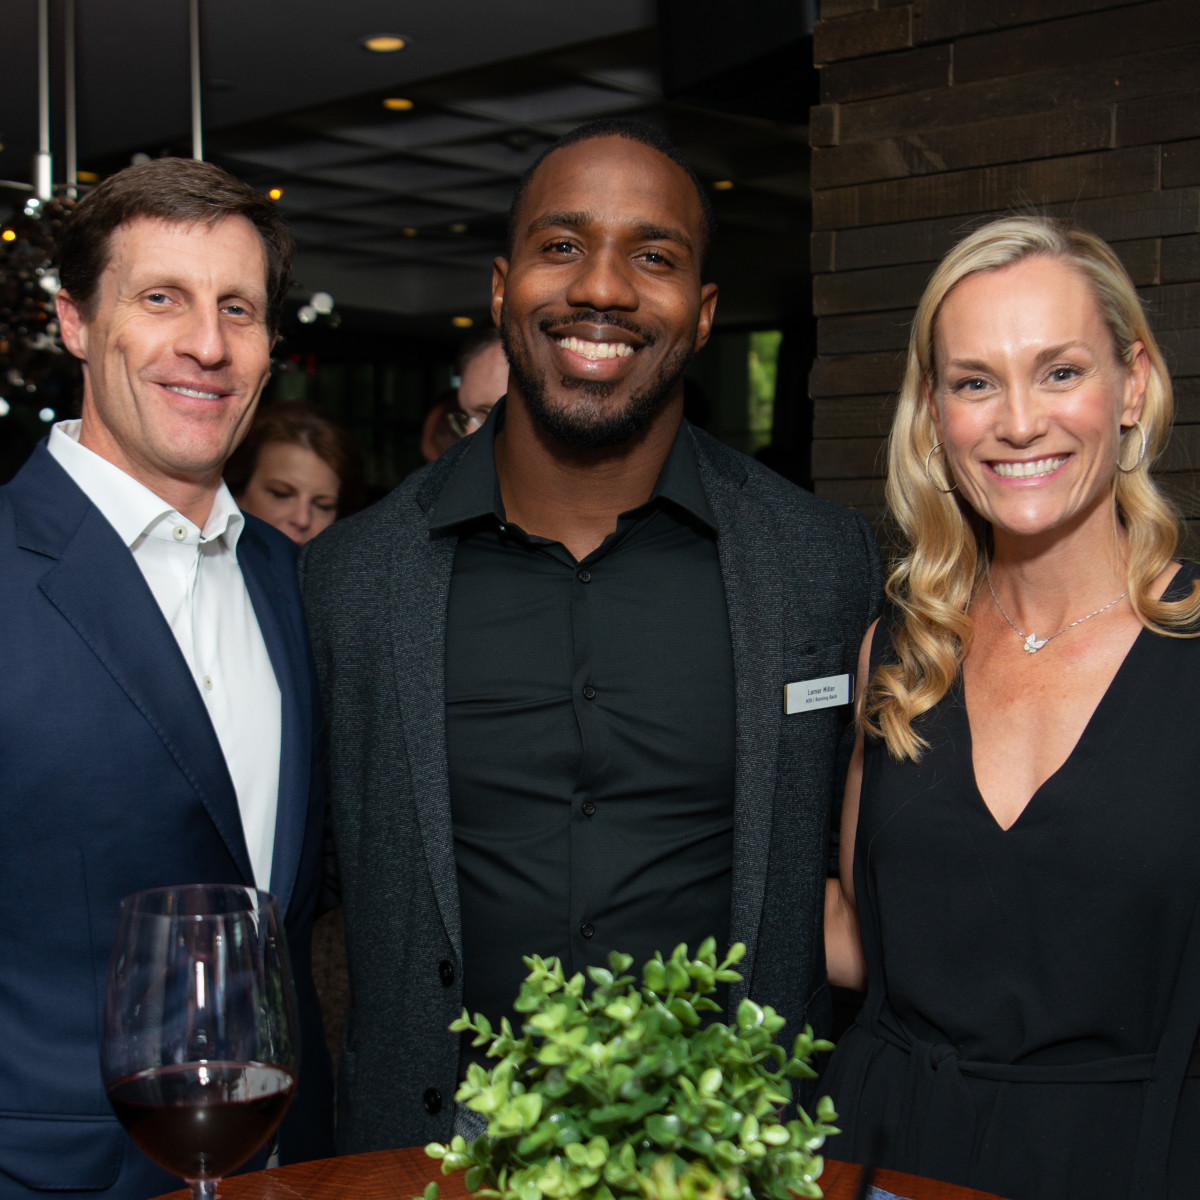 Houston Texans Champions for Youth Dinner Lamar Miller guests